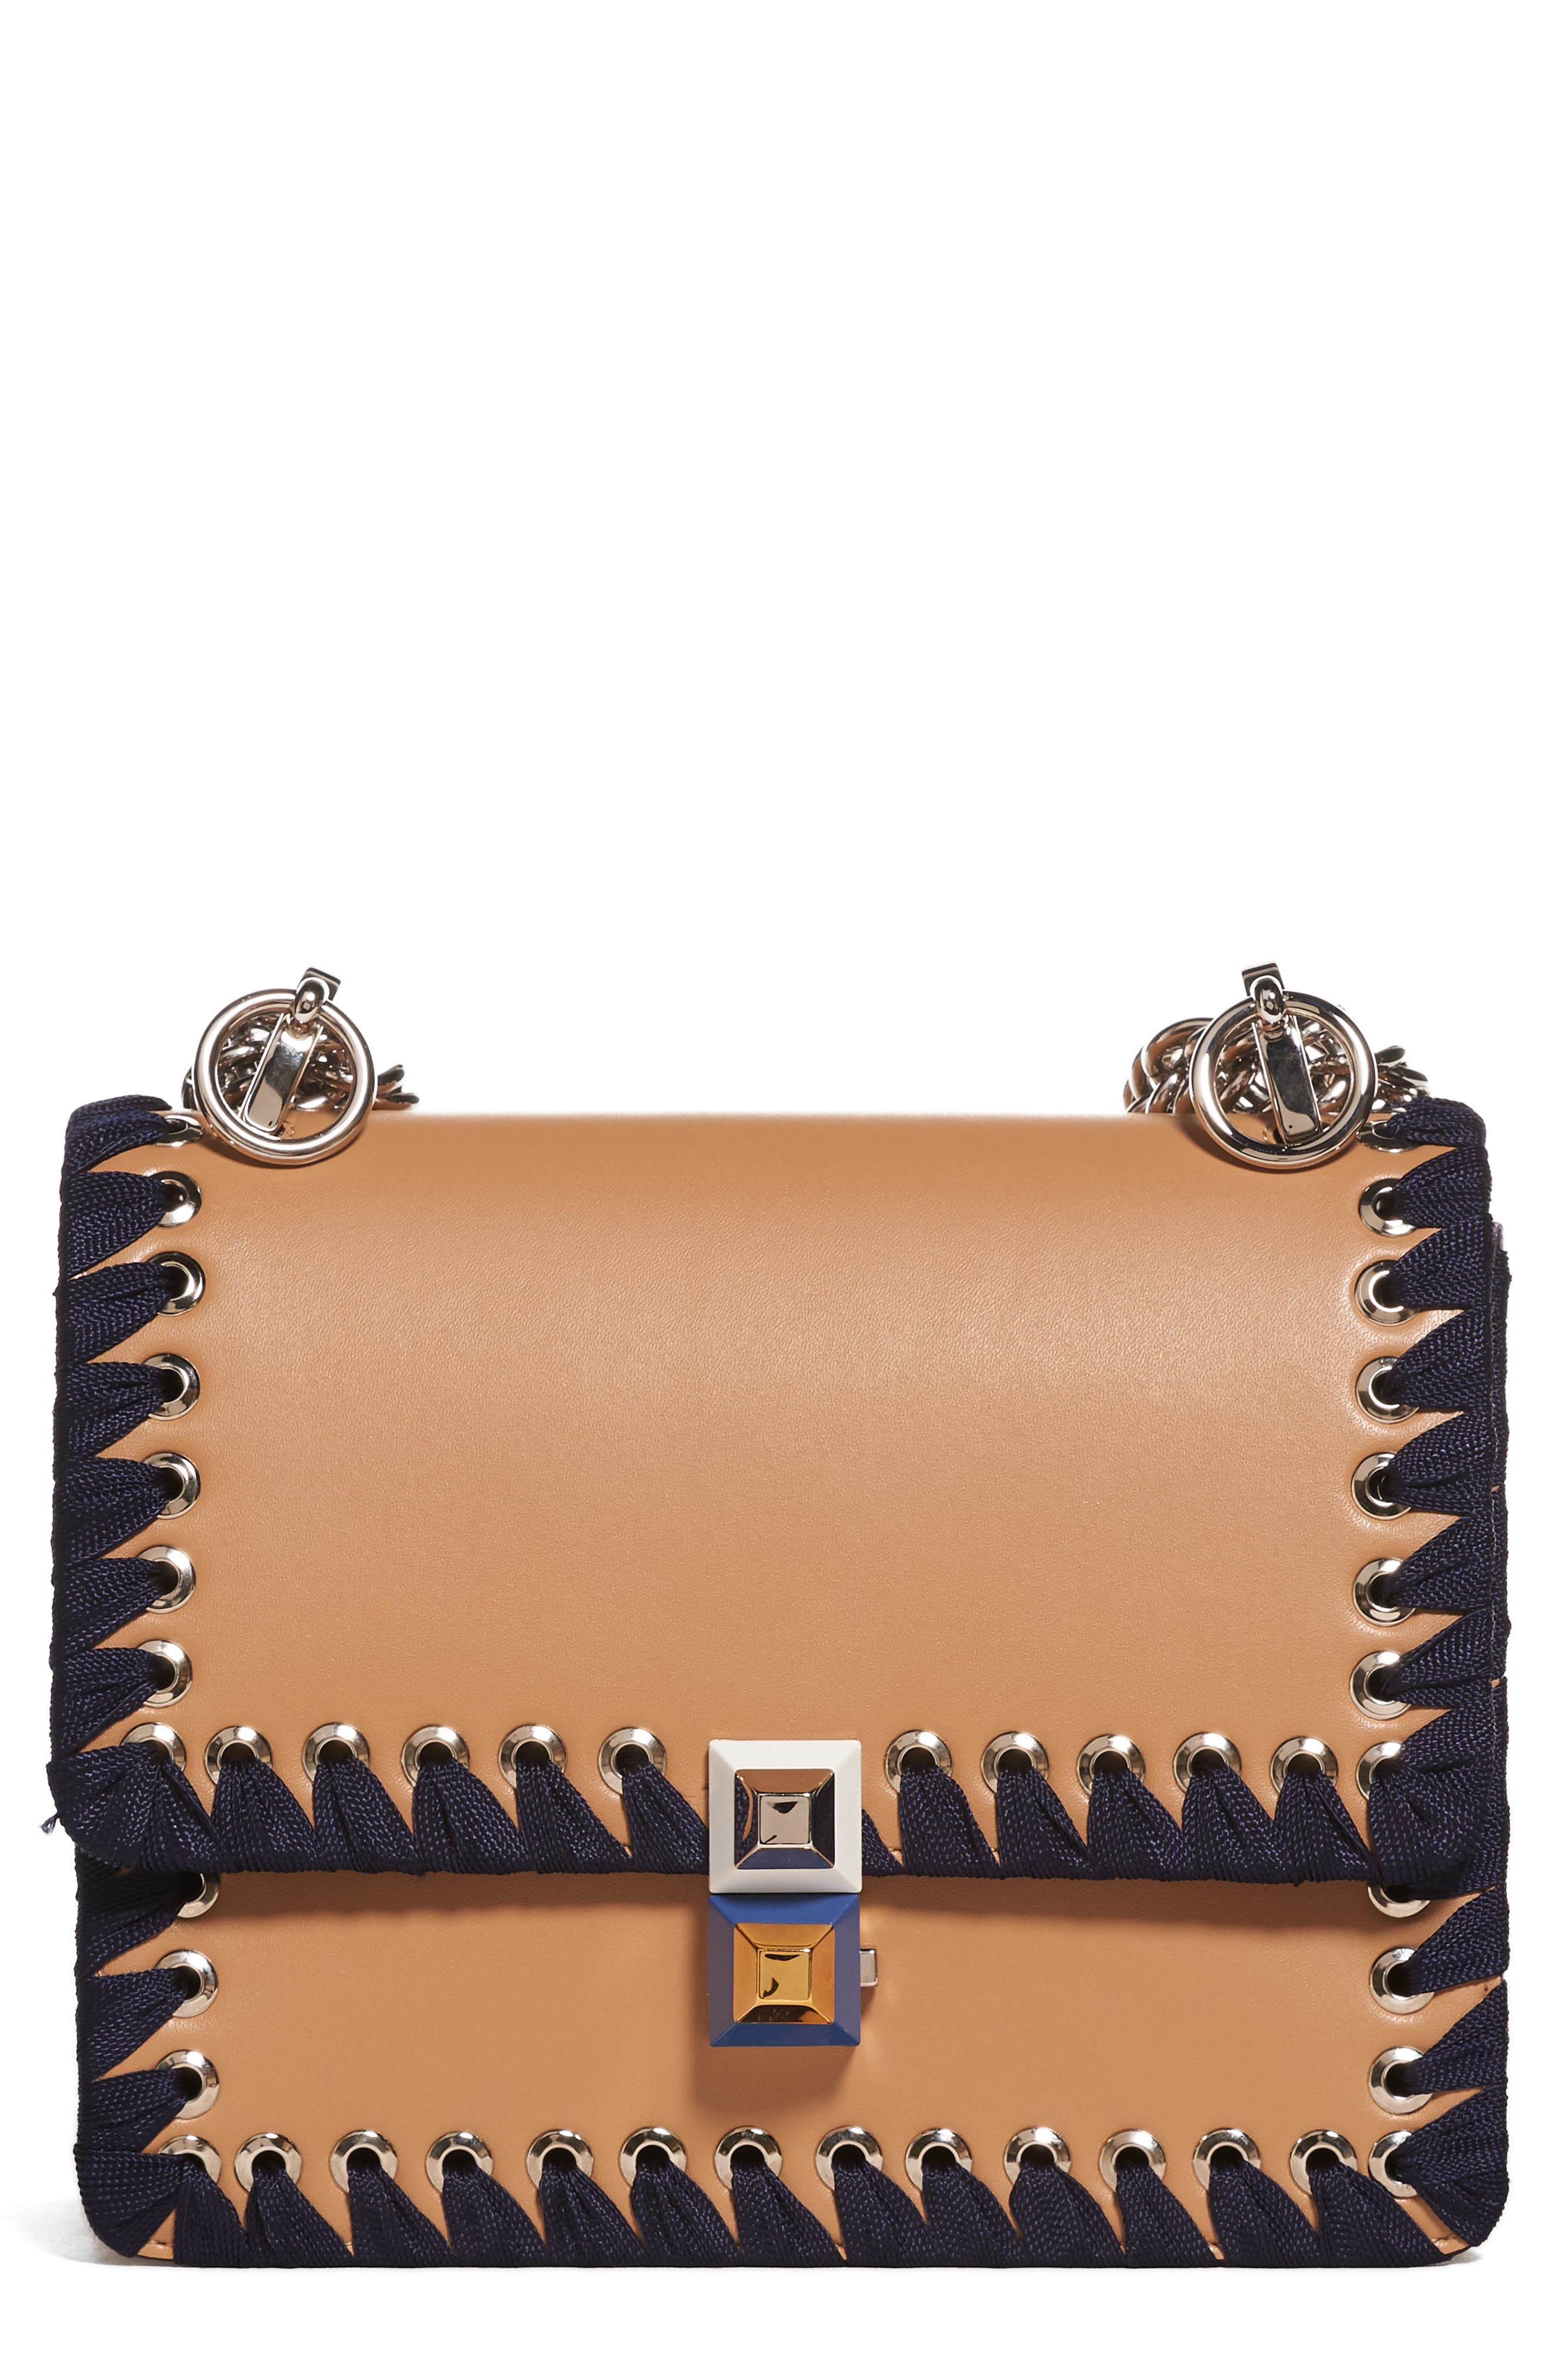 FENDI Small Kan I Whipstitch Leather Shoulder Bag